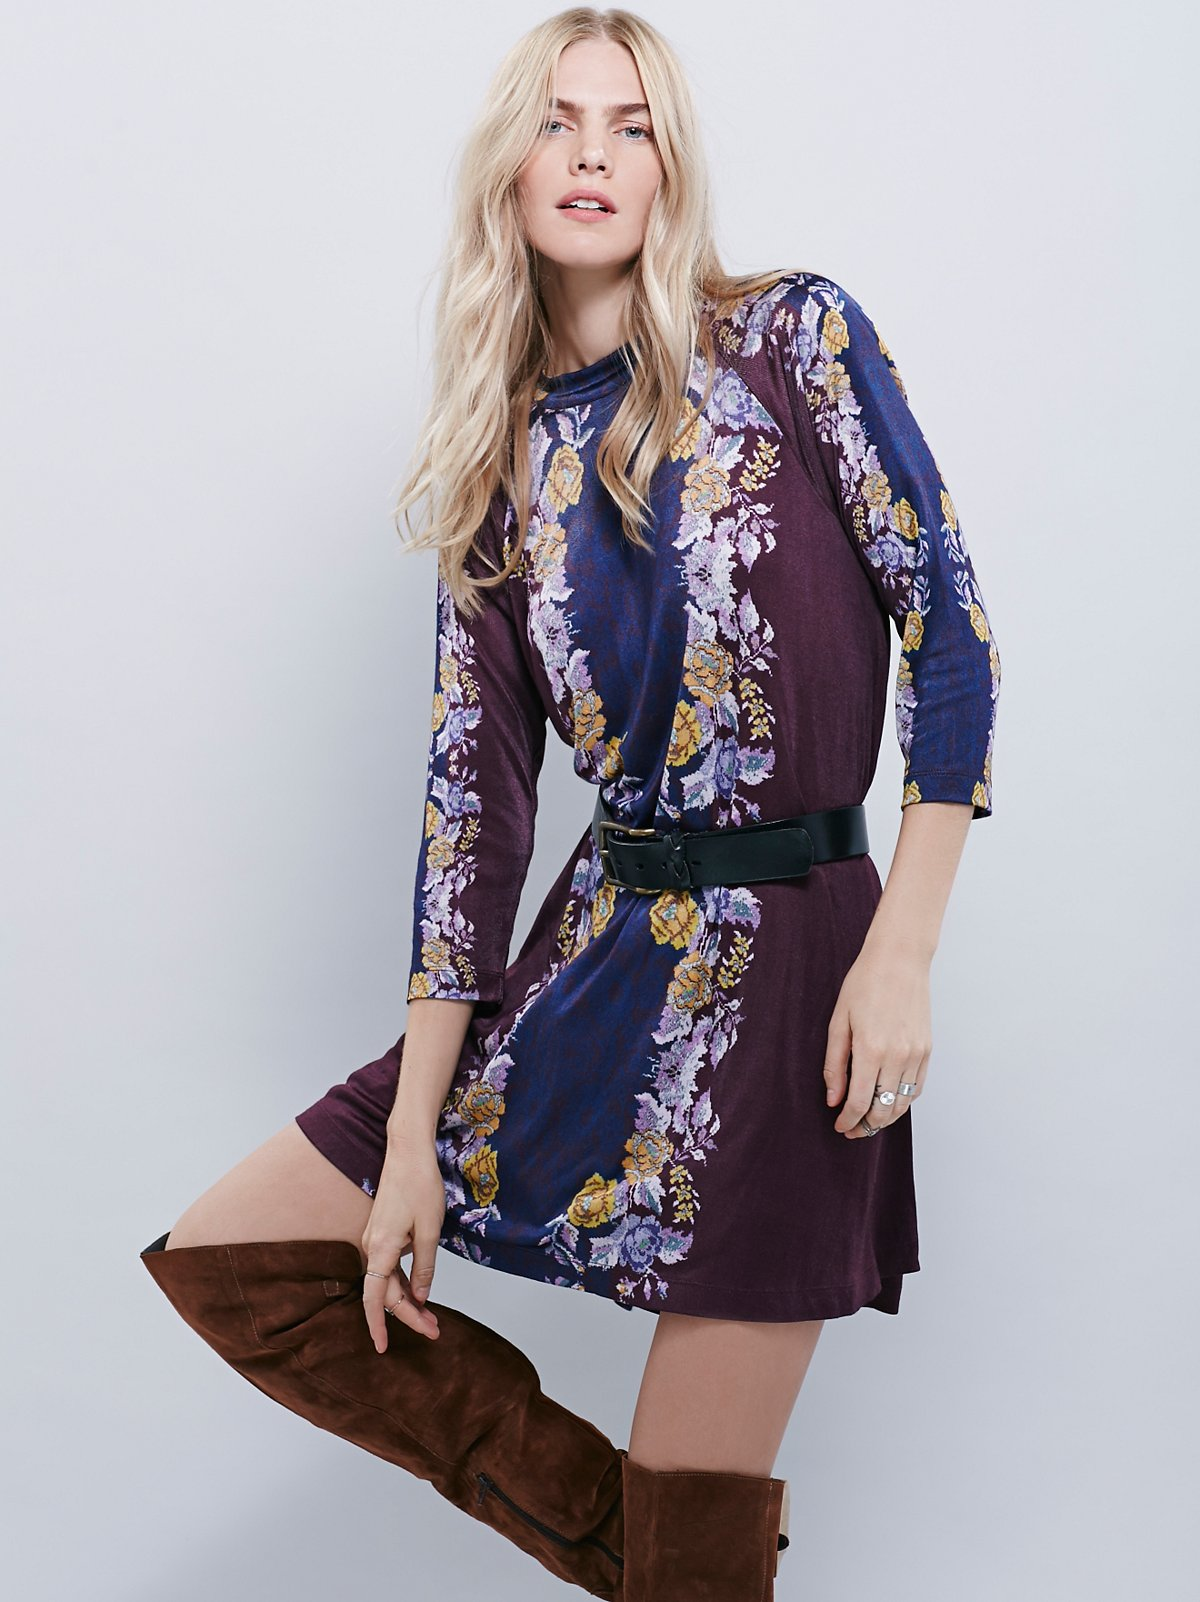 FP New Romantics Fiesta Floral Dress